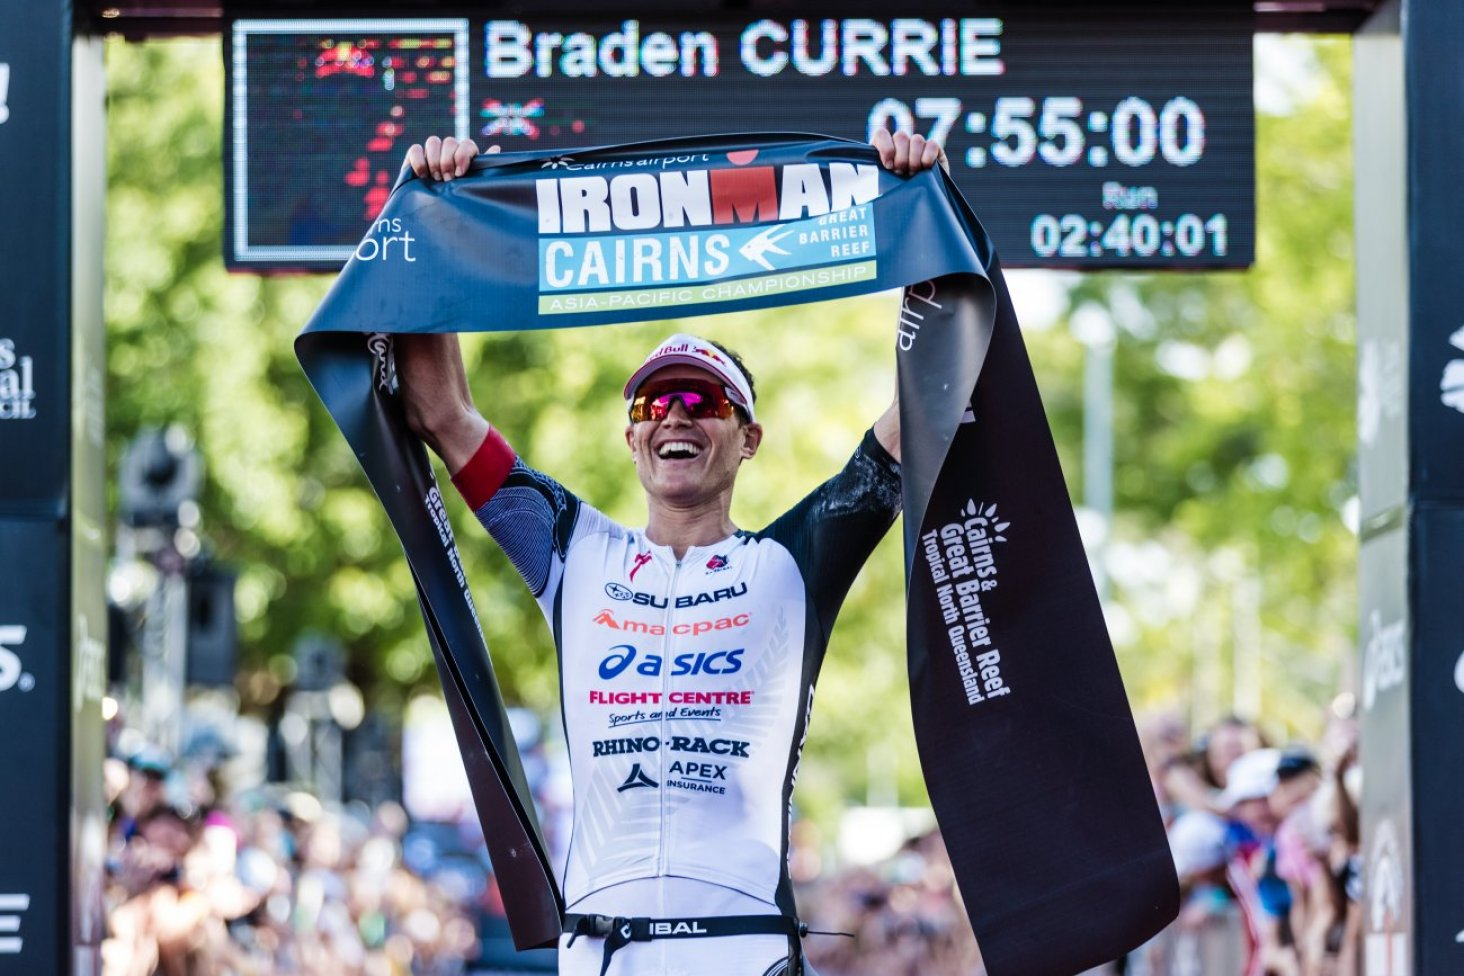 Subaru brand ambassador Braden Currie wins Ironman Cairns in June. PHOTO: KORUPT VISION